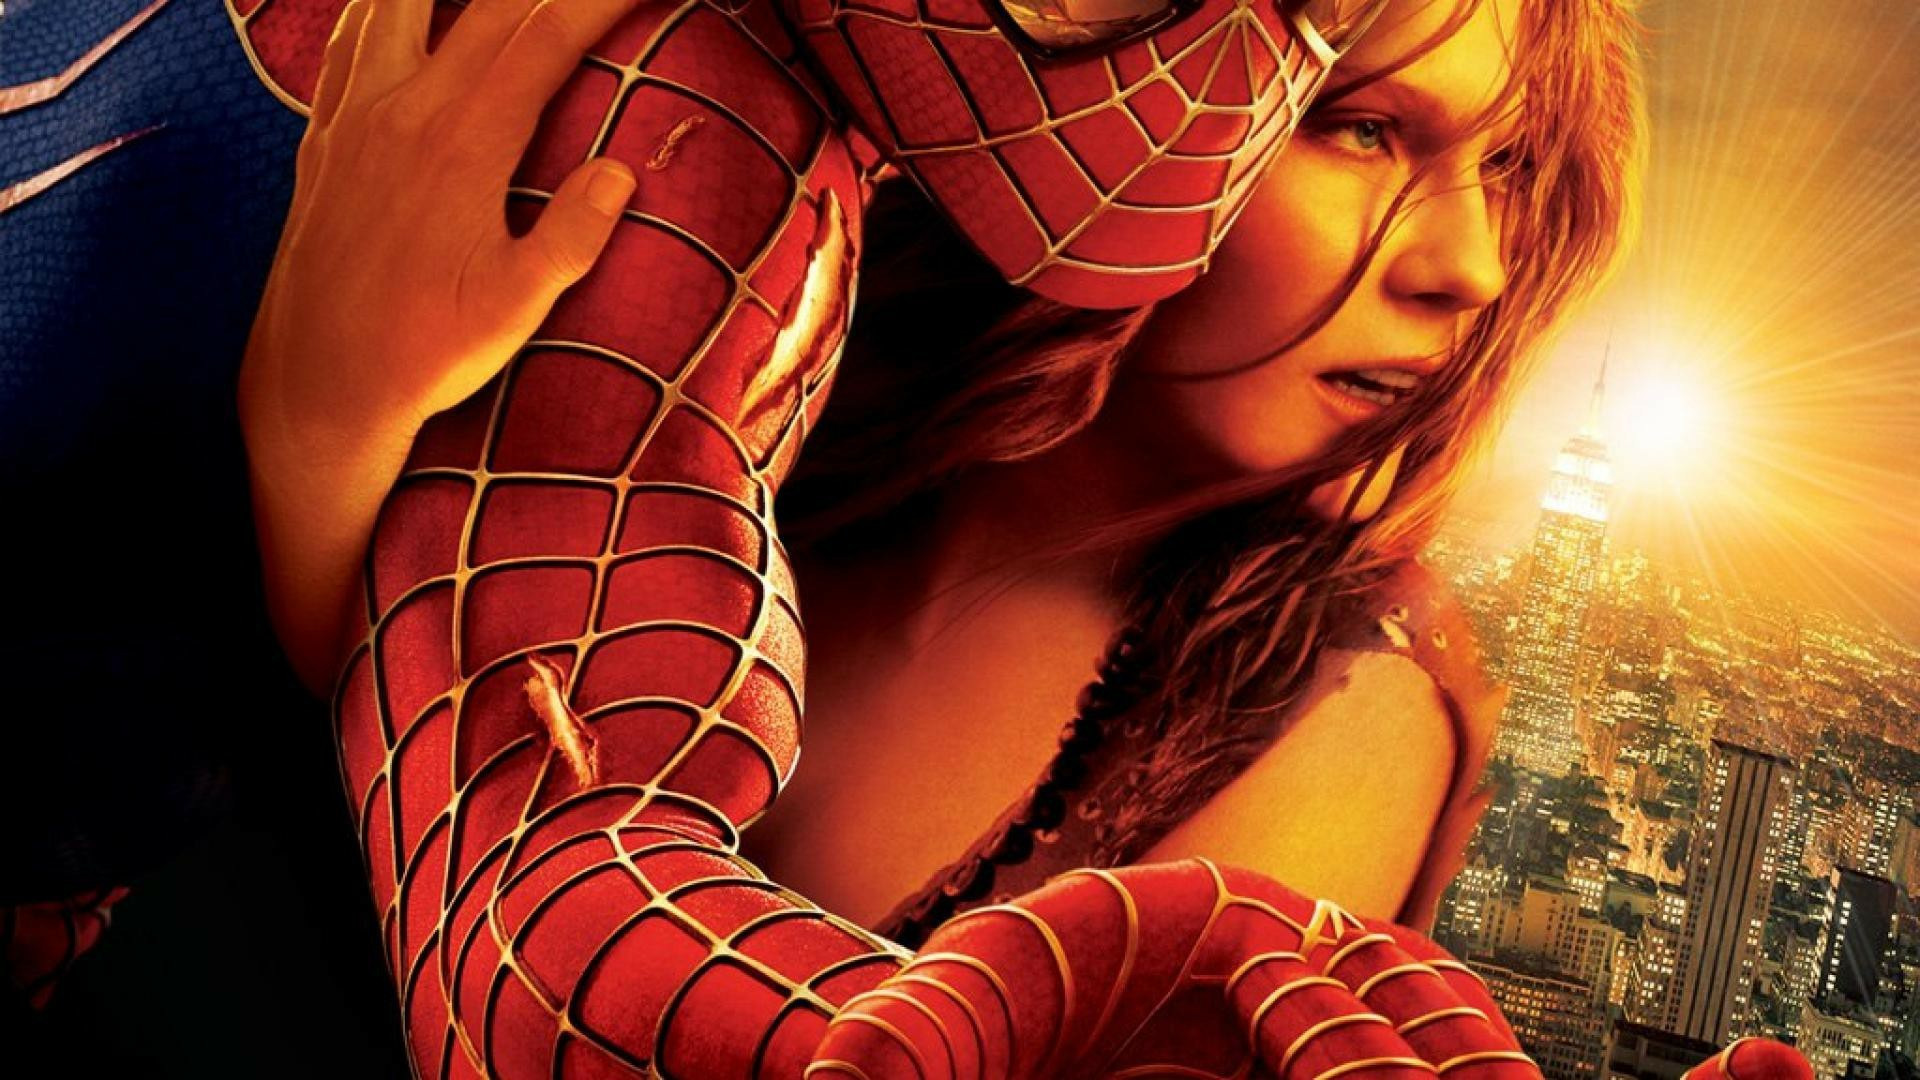 Spiderman Carnage Wallpapers Images : Movies Wallpaper Altilici 1920×1080  Spiderman Pics Wallpapers (38